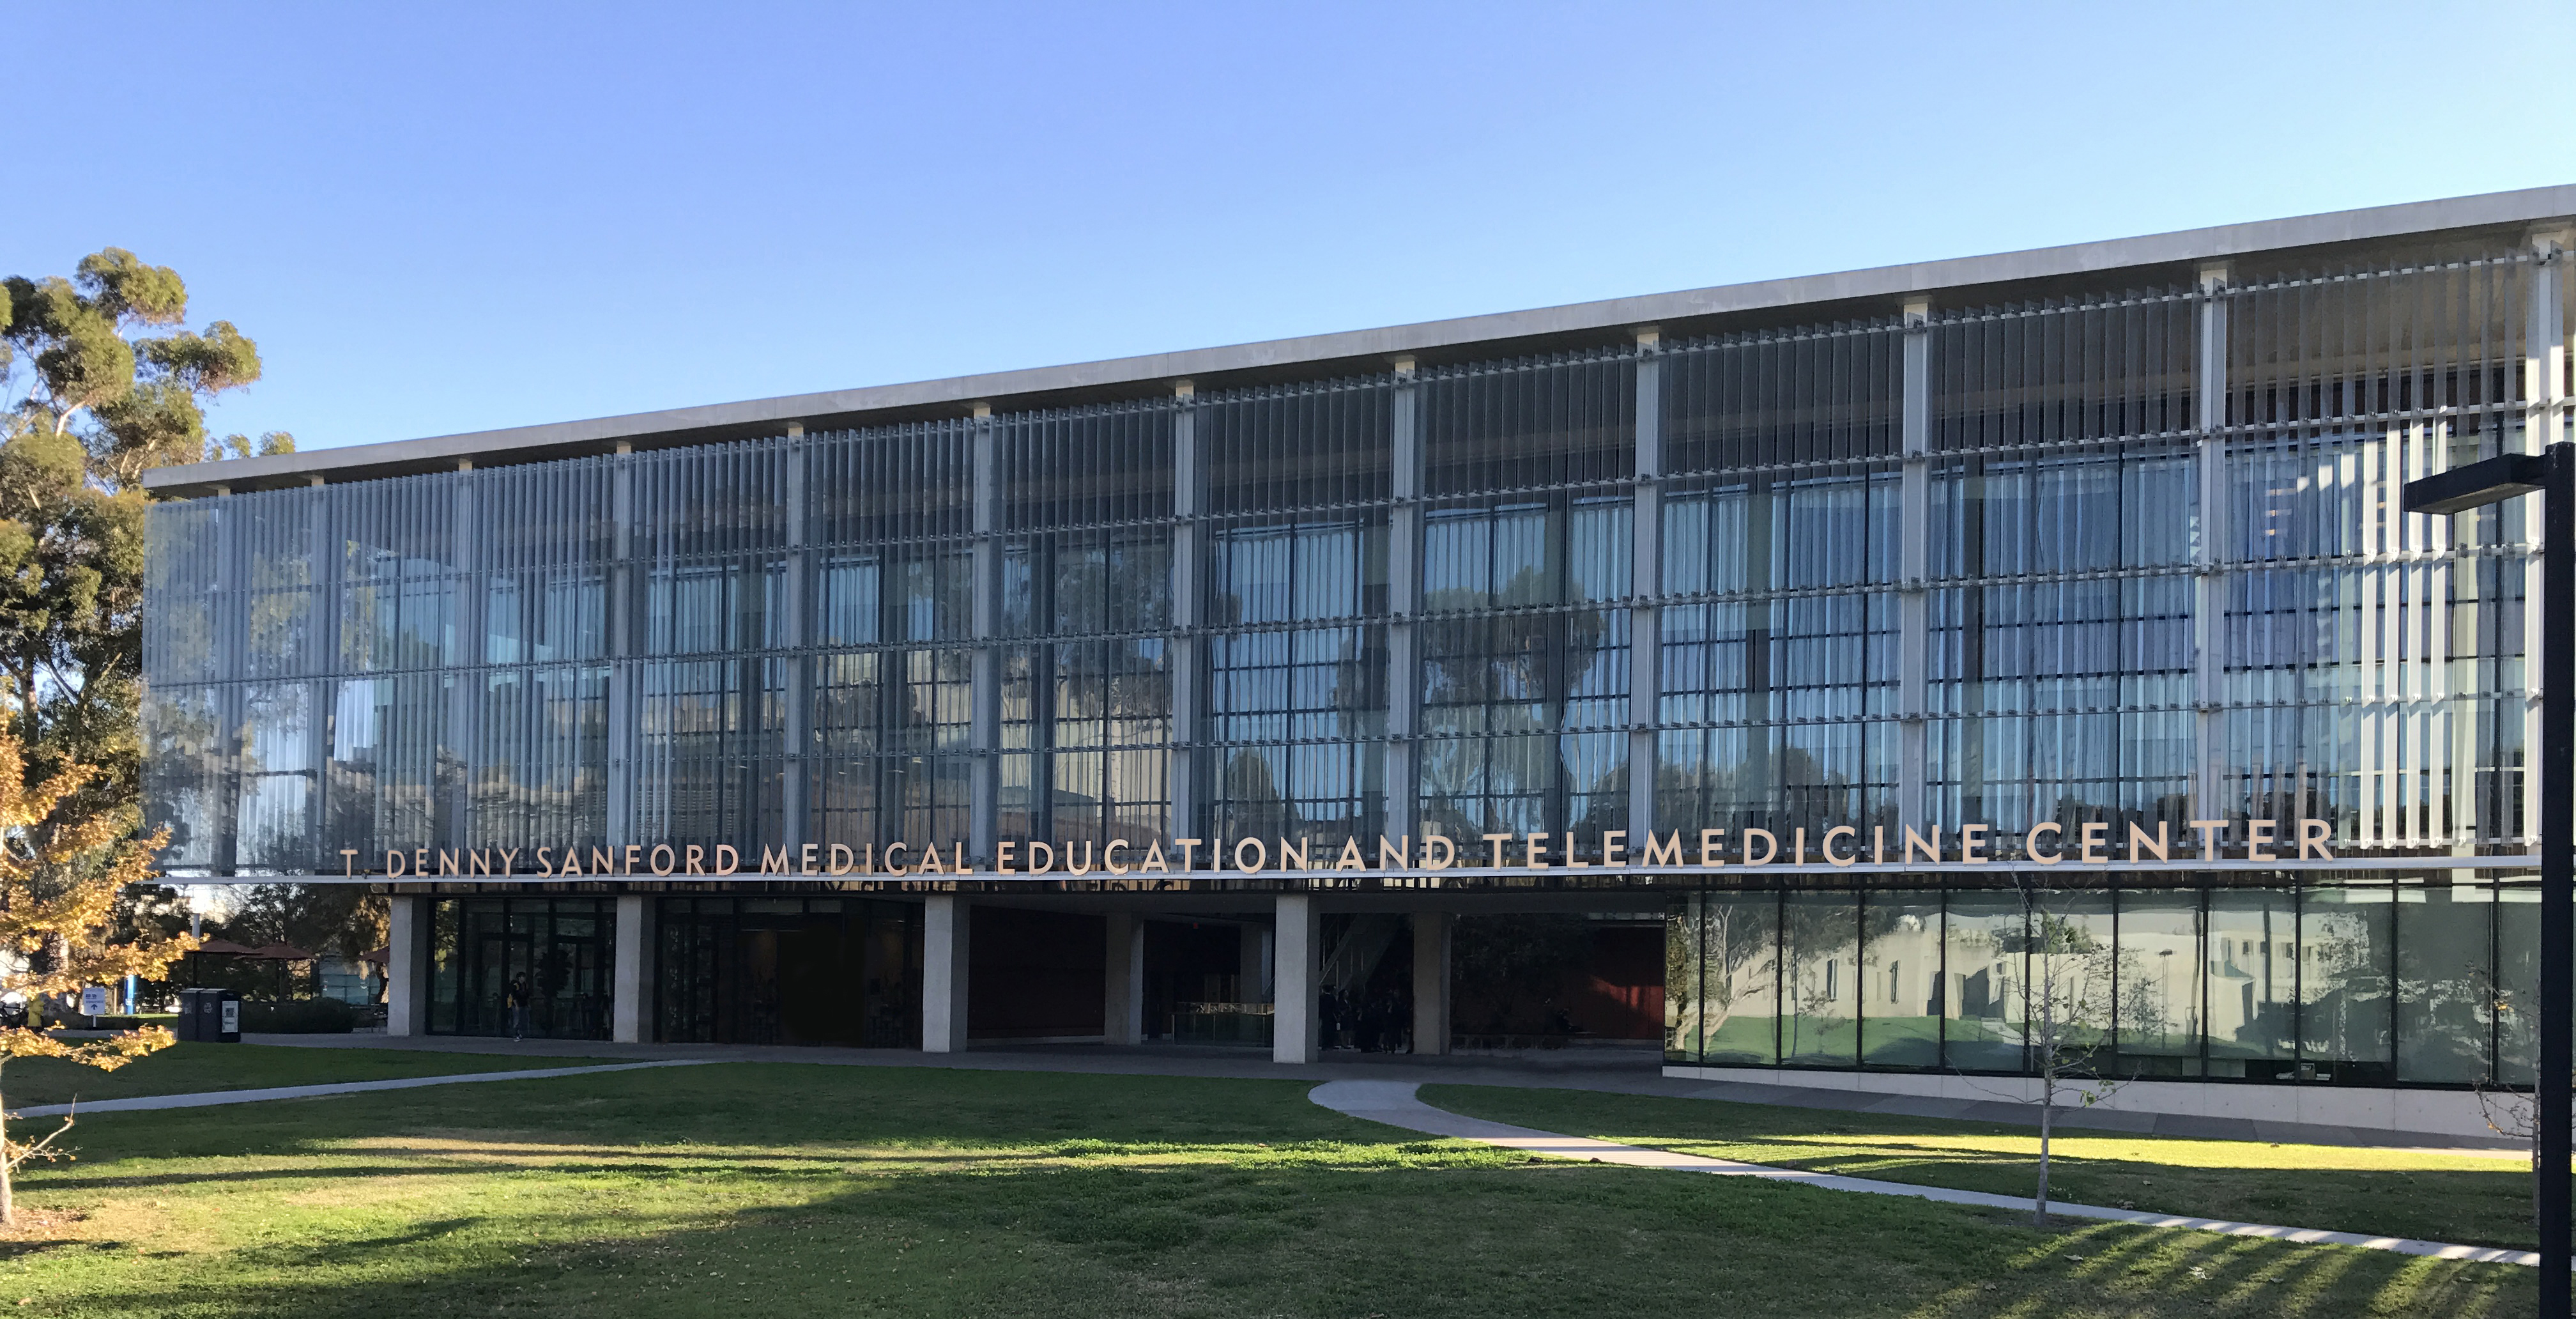 Front facade of the T. Denny Sanford Medical Education and Telemedecine Center Building